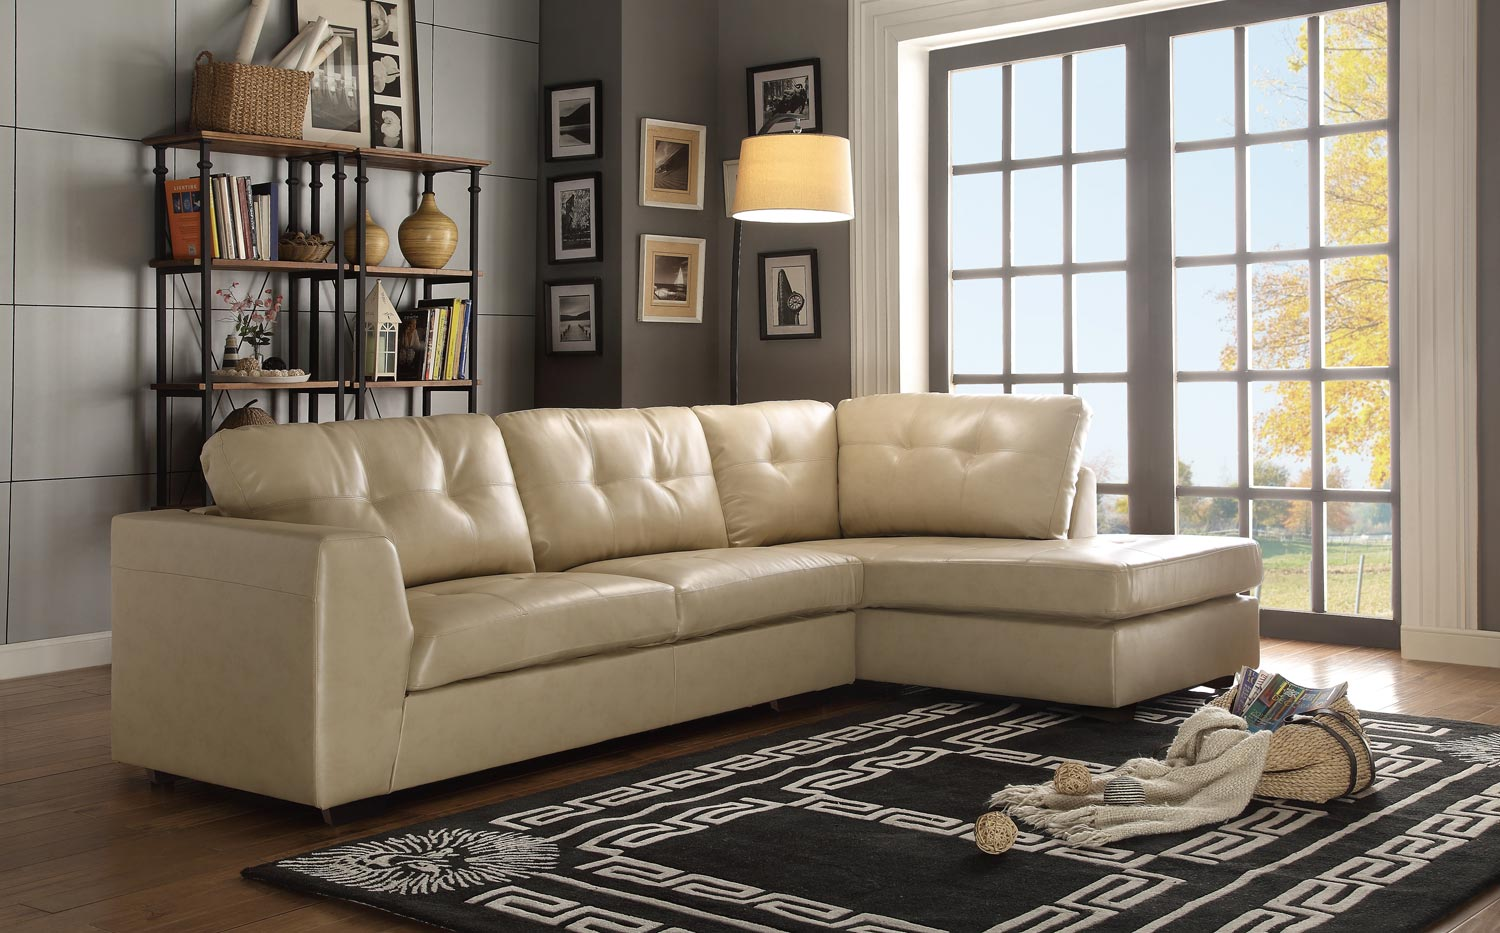 Homelegance Springer Sectional Sofa Taupe Bonded Leather Match